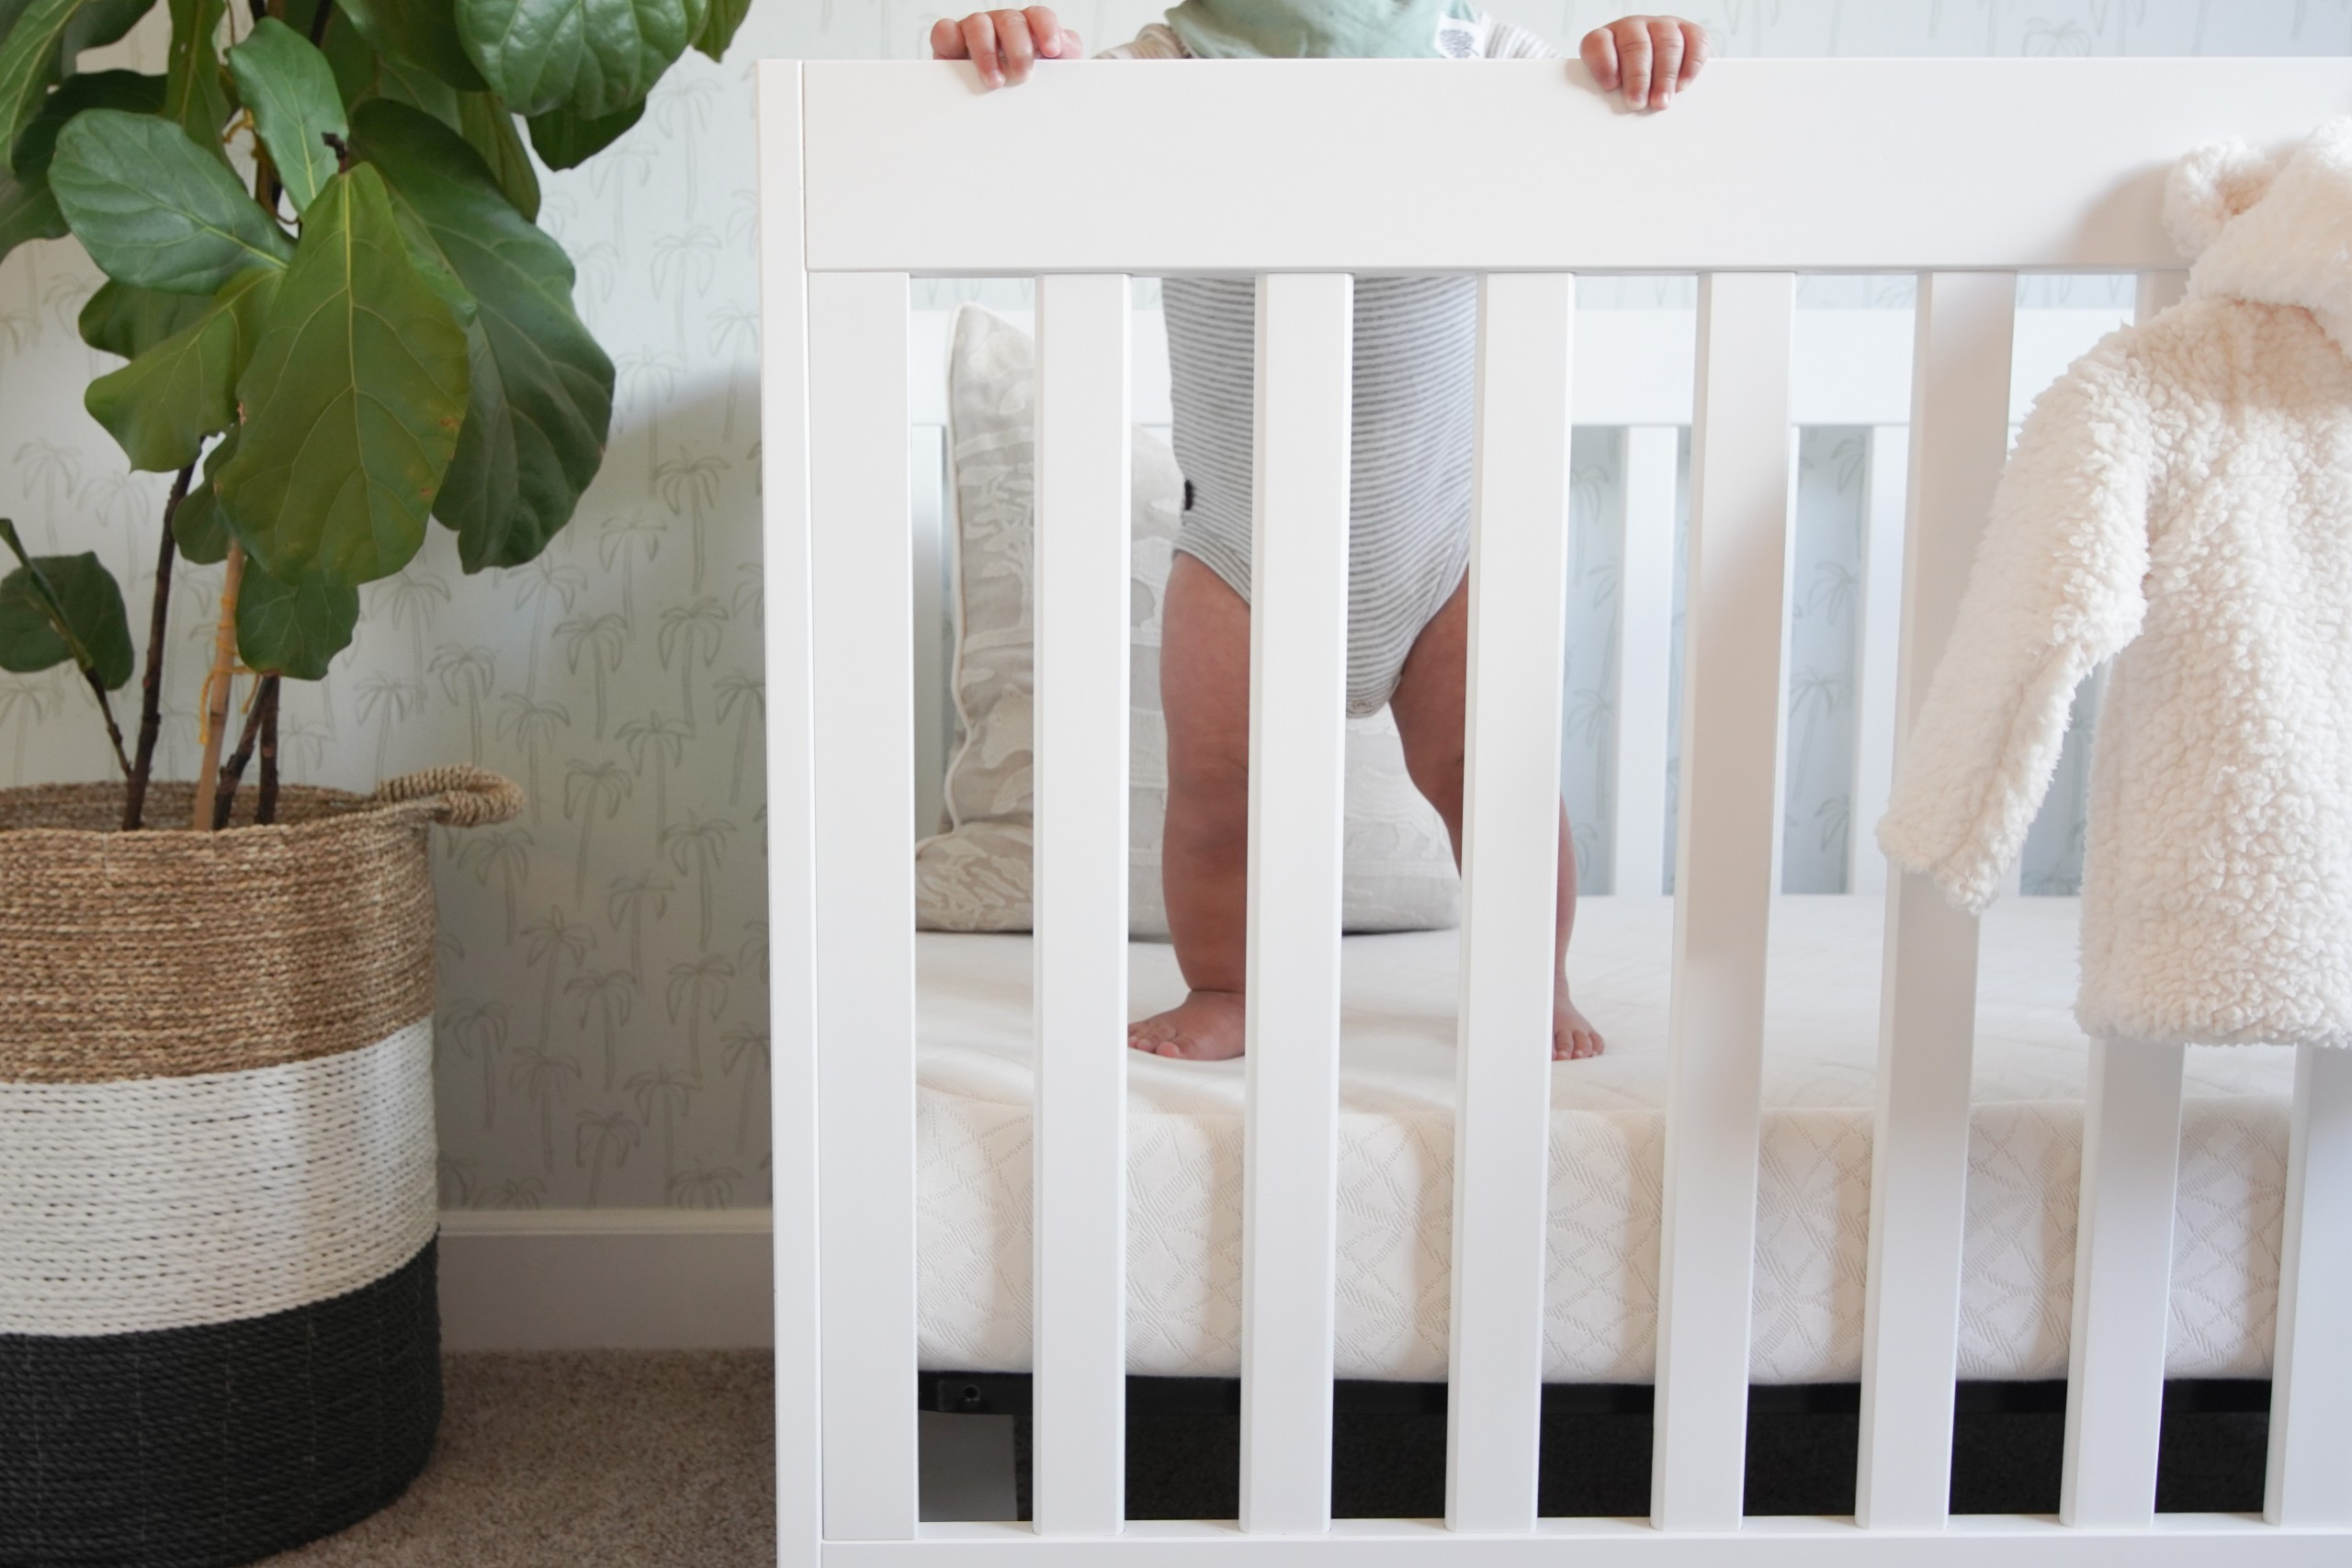 Cropped image of baby standing in crib.